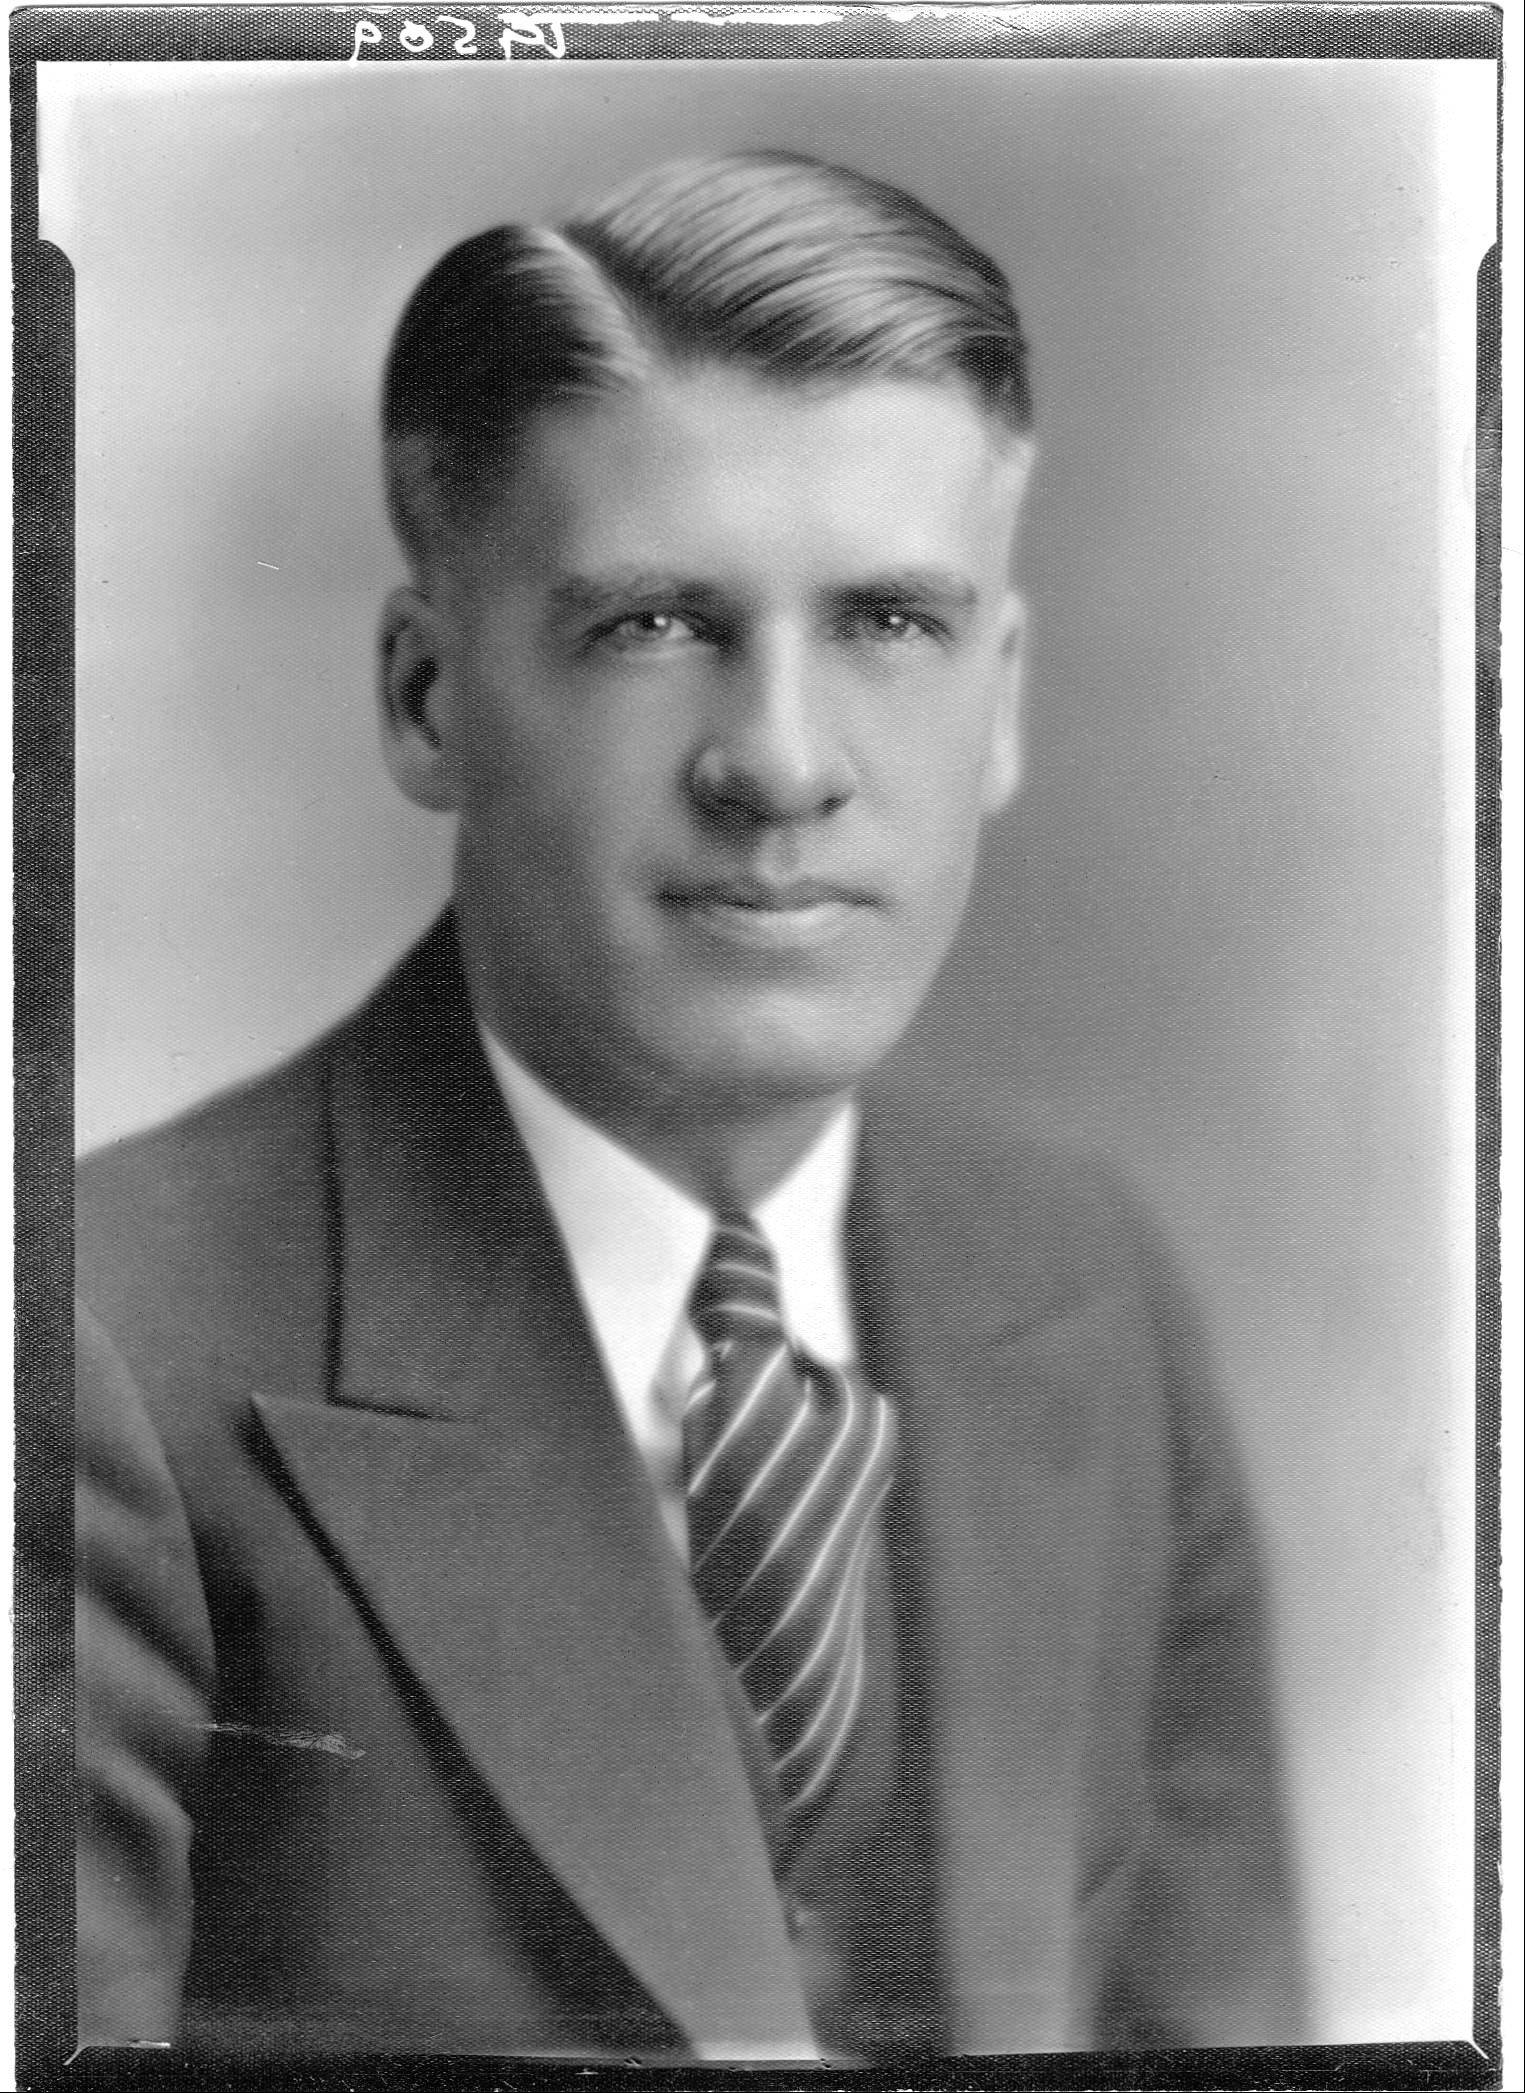 Pastor John Gaardsmoe served the church from 1931 until 1938.